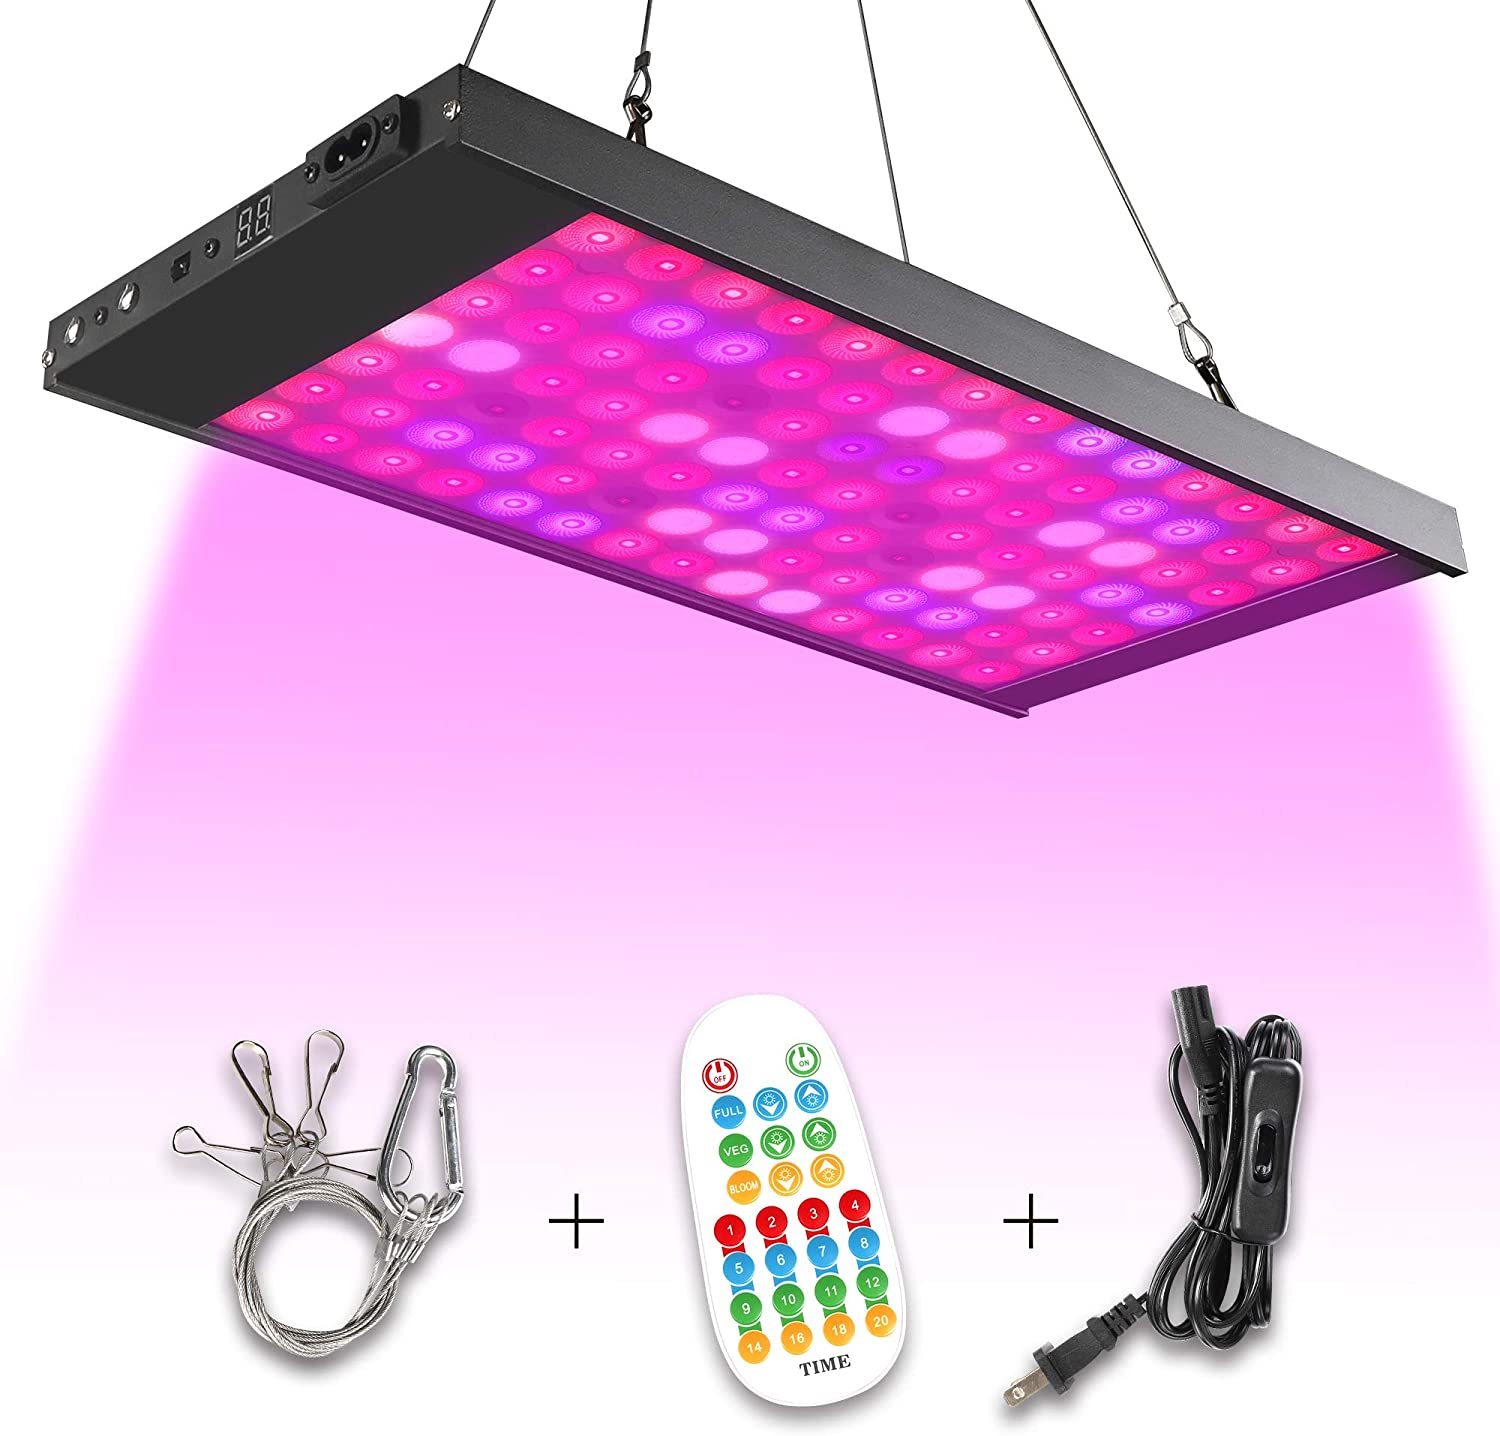 Led Grow Light,300W 98 Led Full Spectrum Growing Lamp Light Bulbs with Timer and Remote for Indoor Plants Seedling Greenhouse Hydroponic Plants, Multiple Panels Connectable